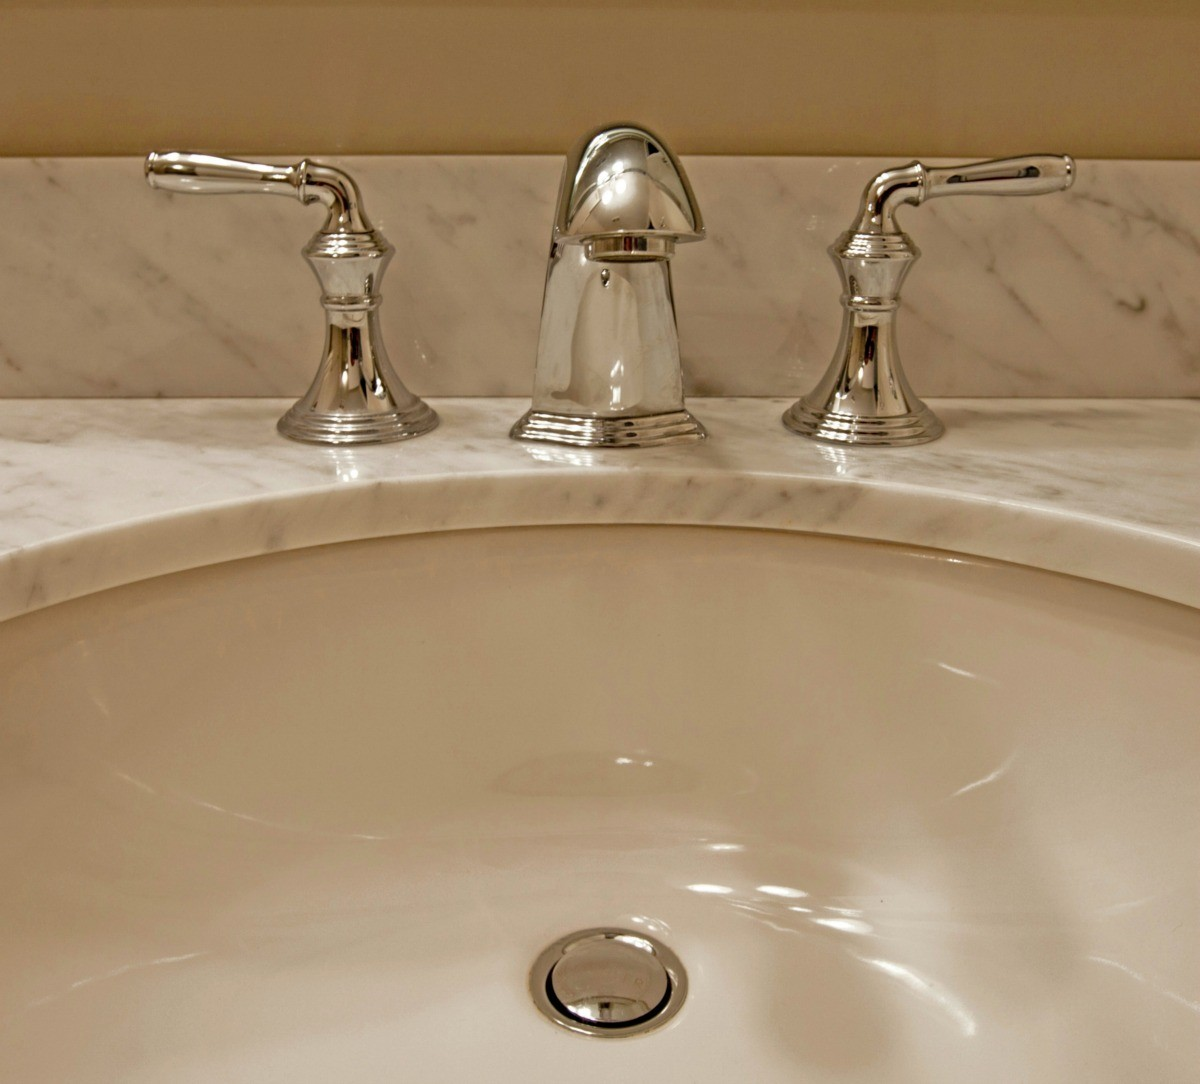 removing stains from a porcelain sink